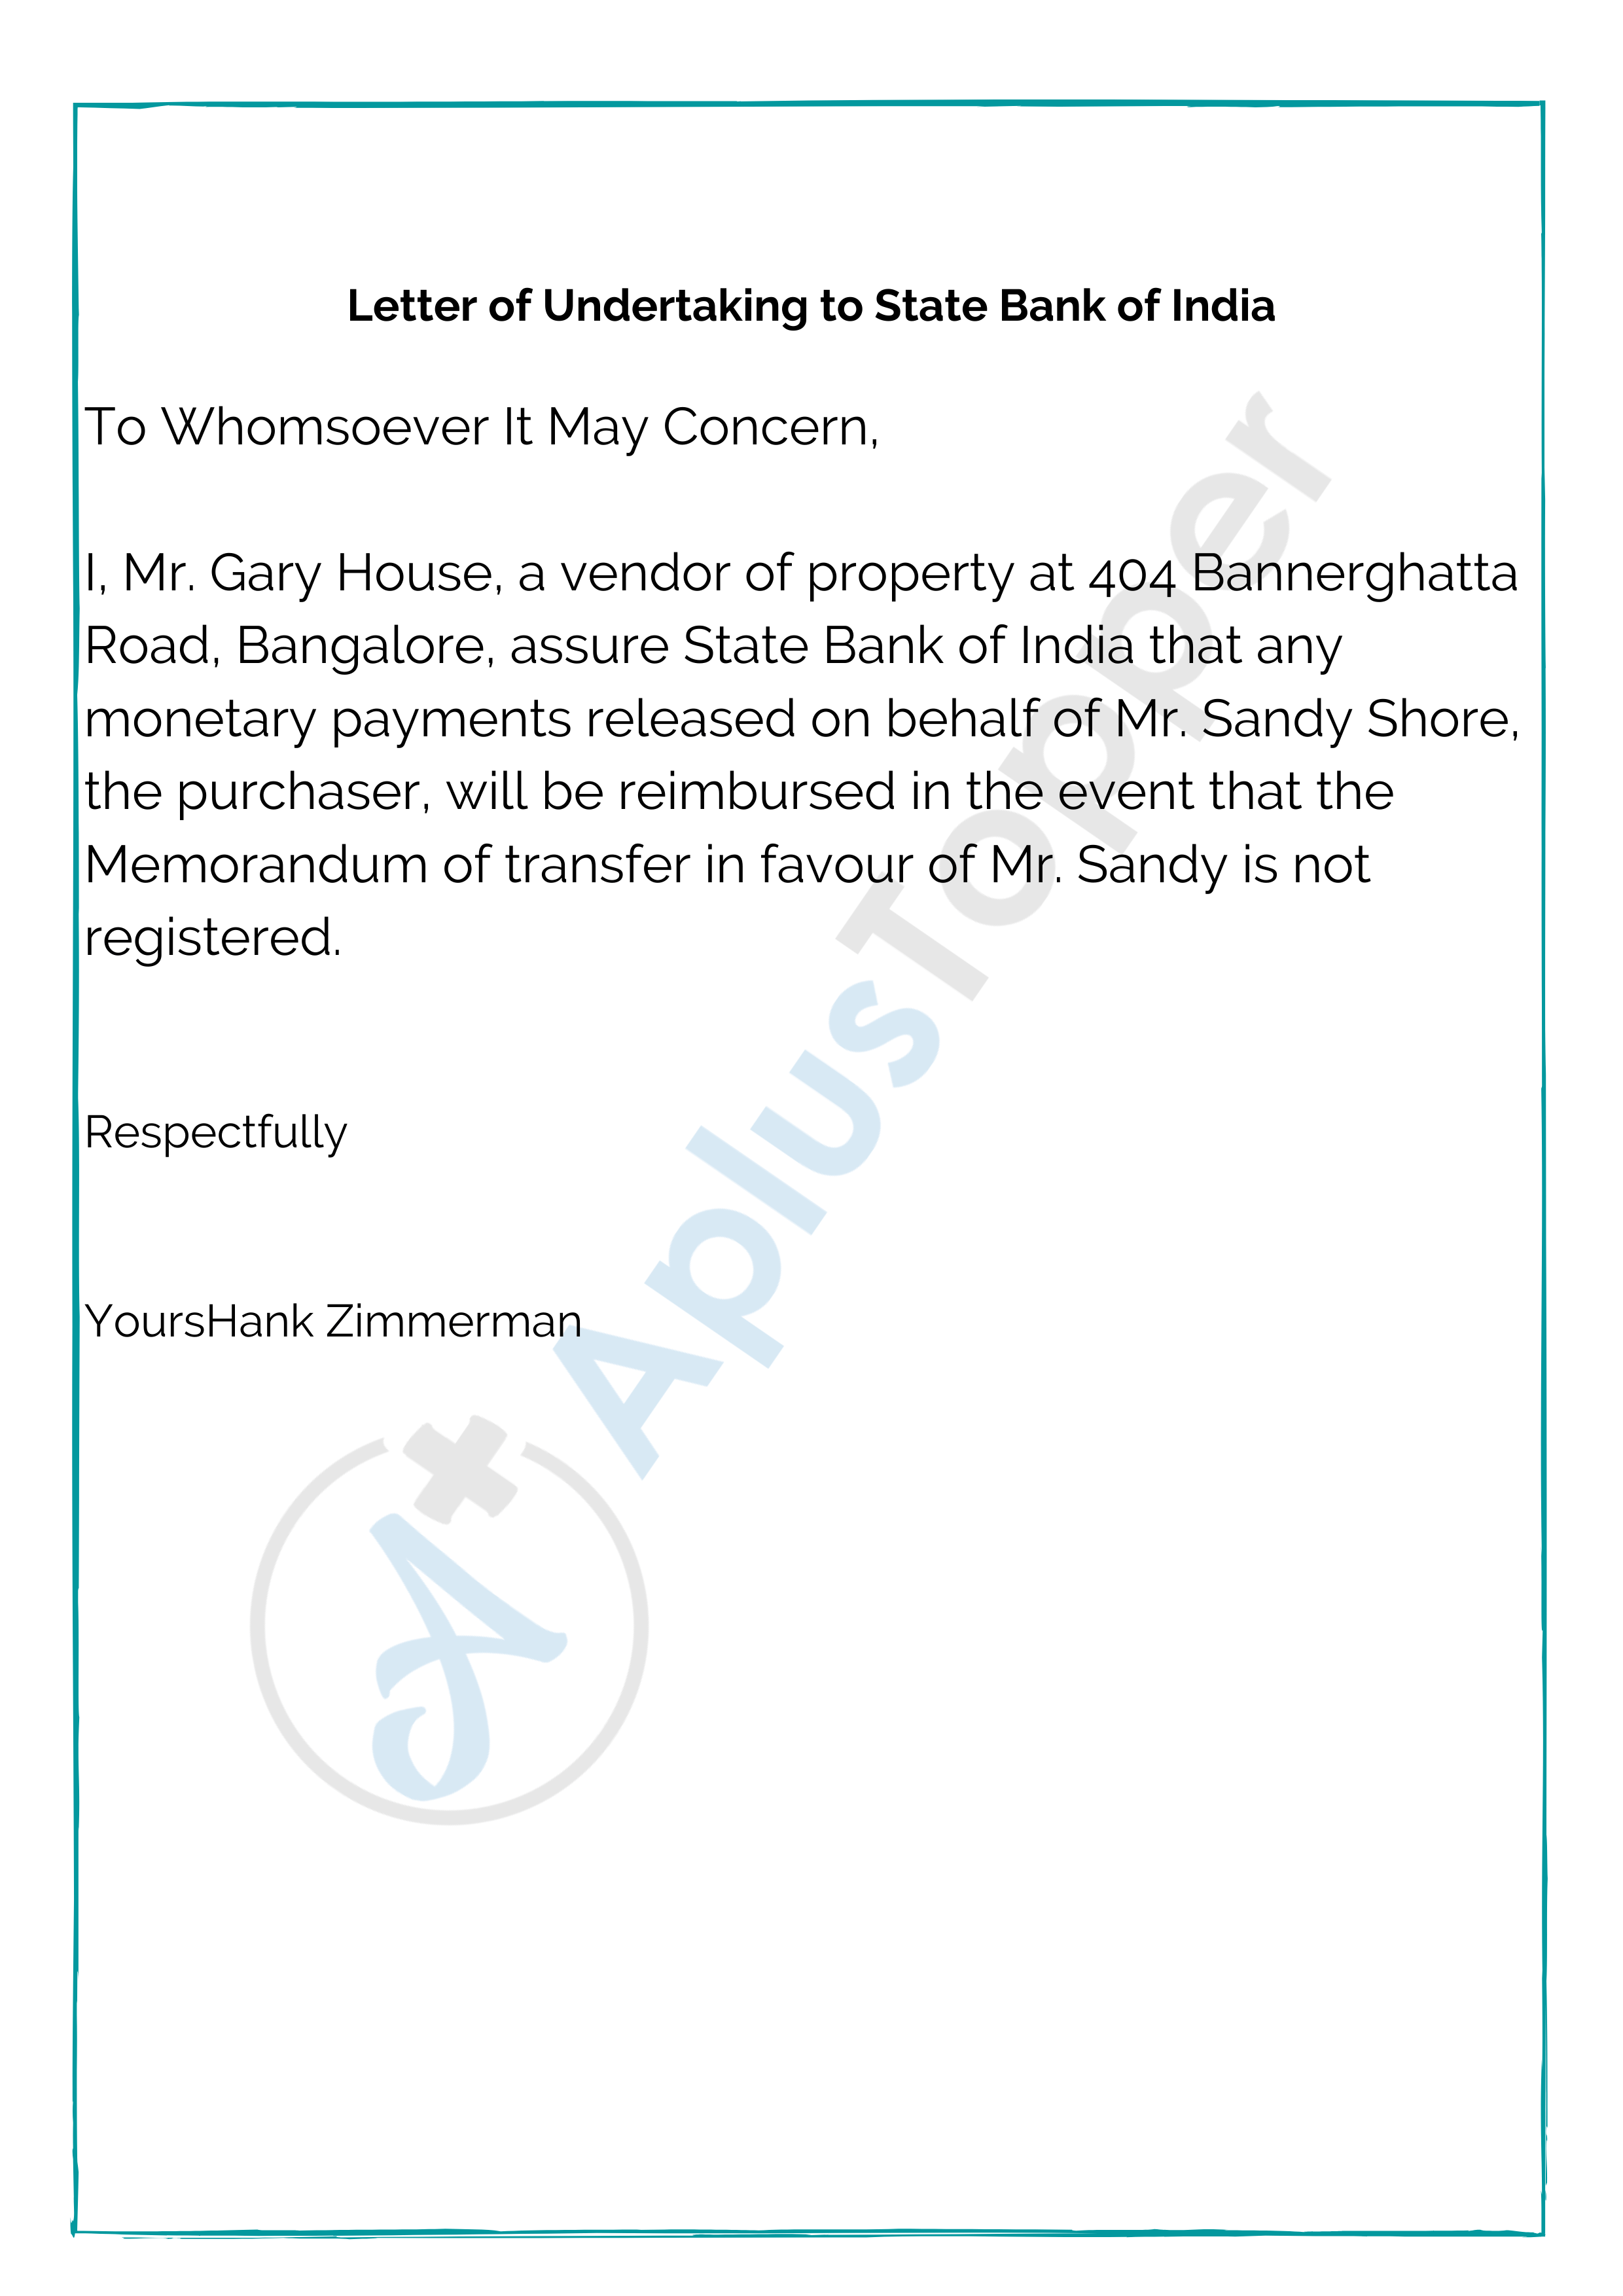 Letter of Undertaking to State Bank of India